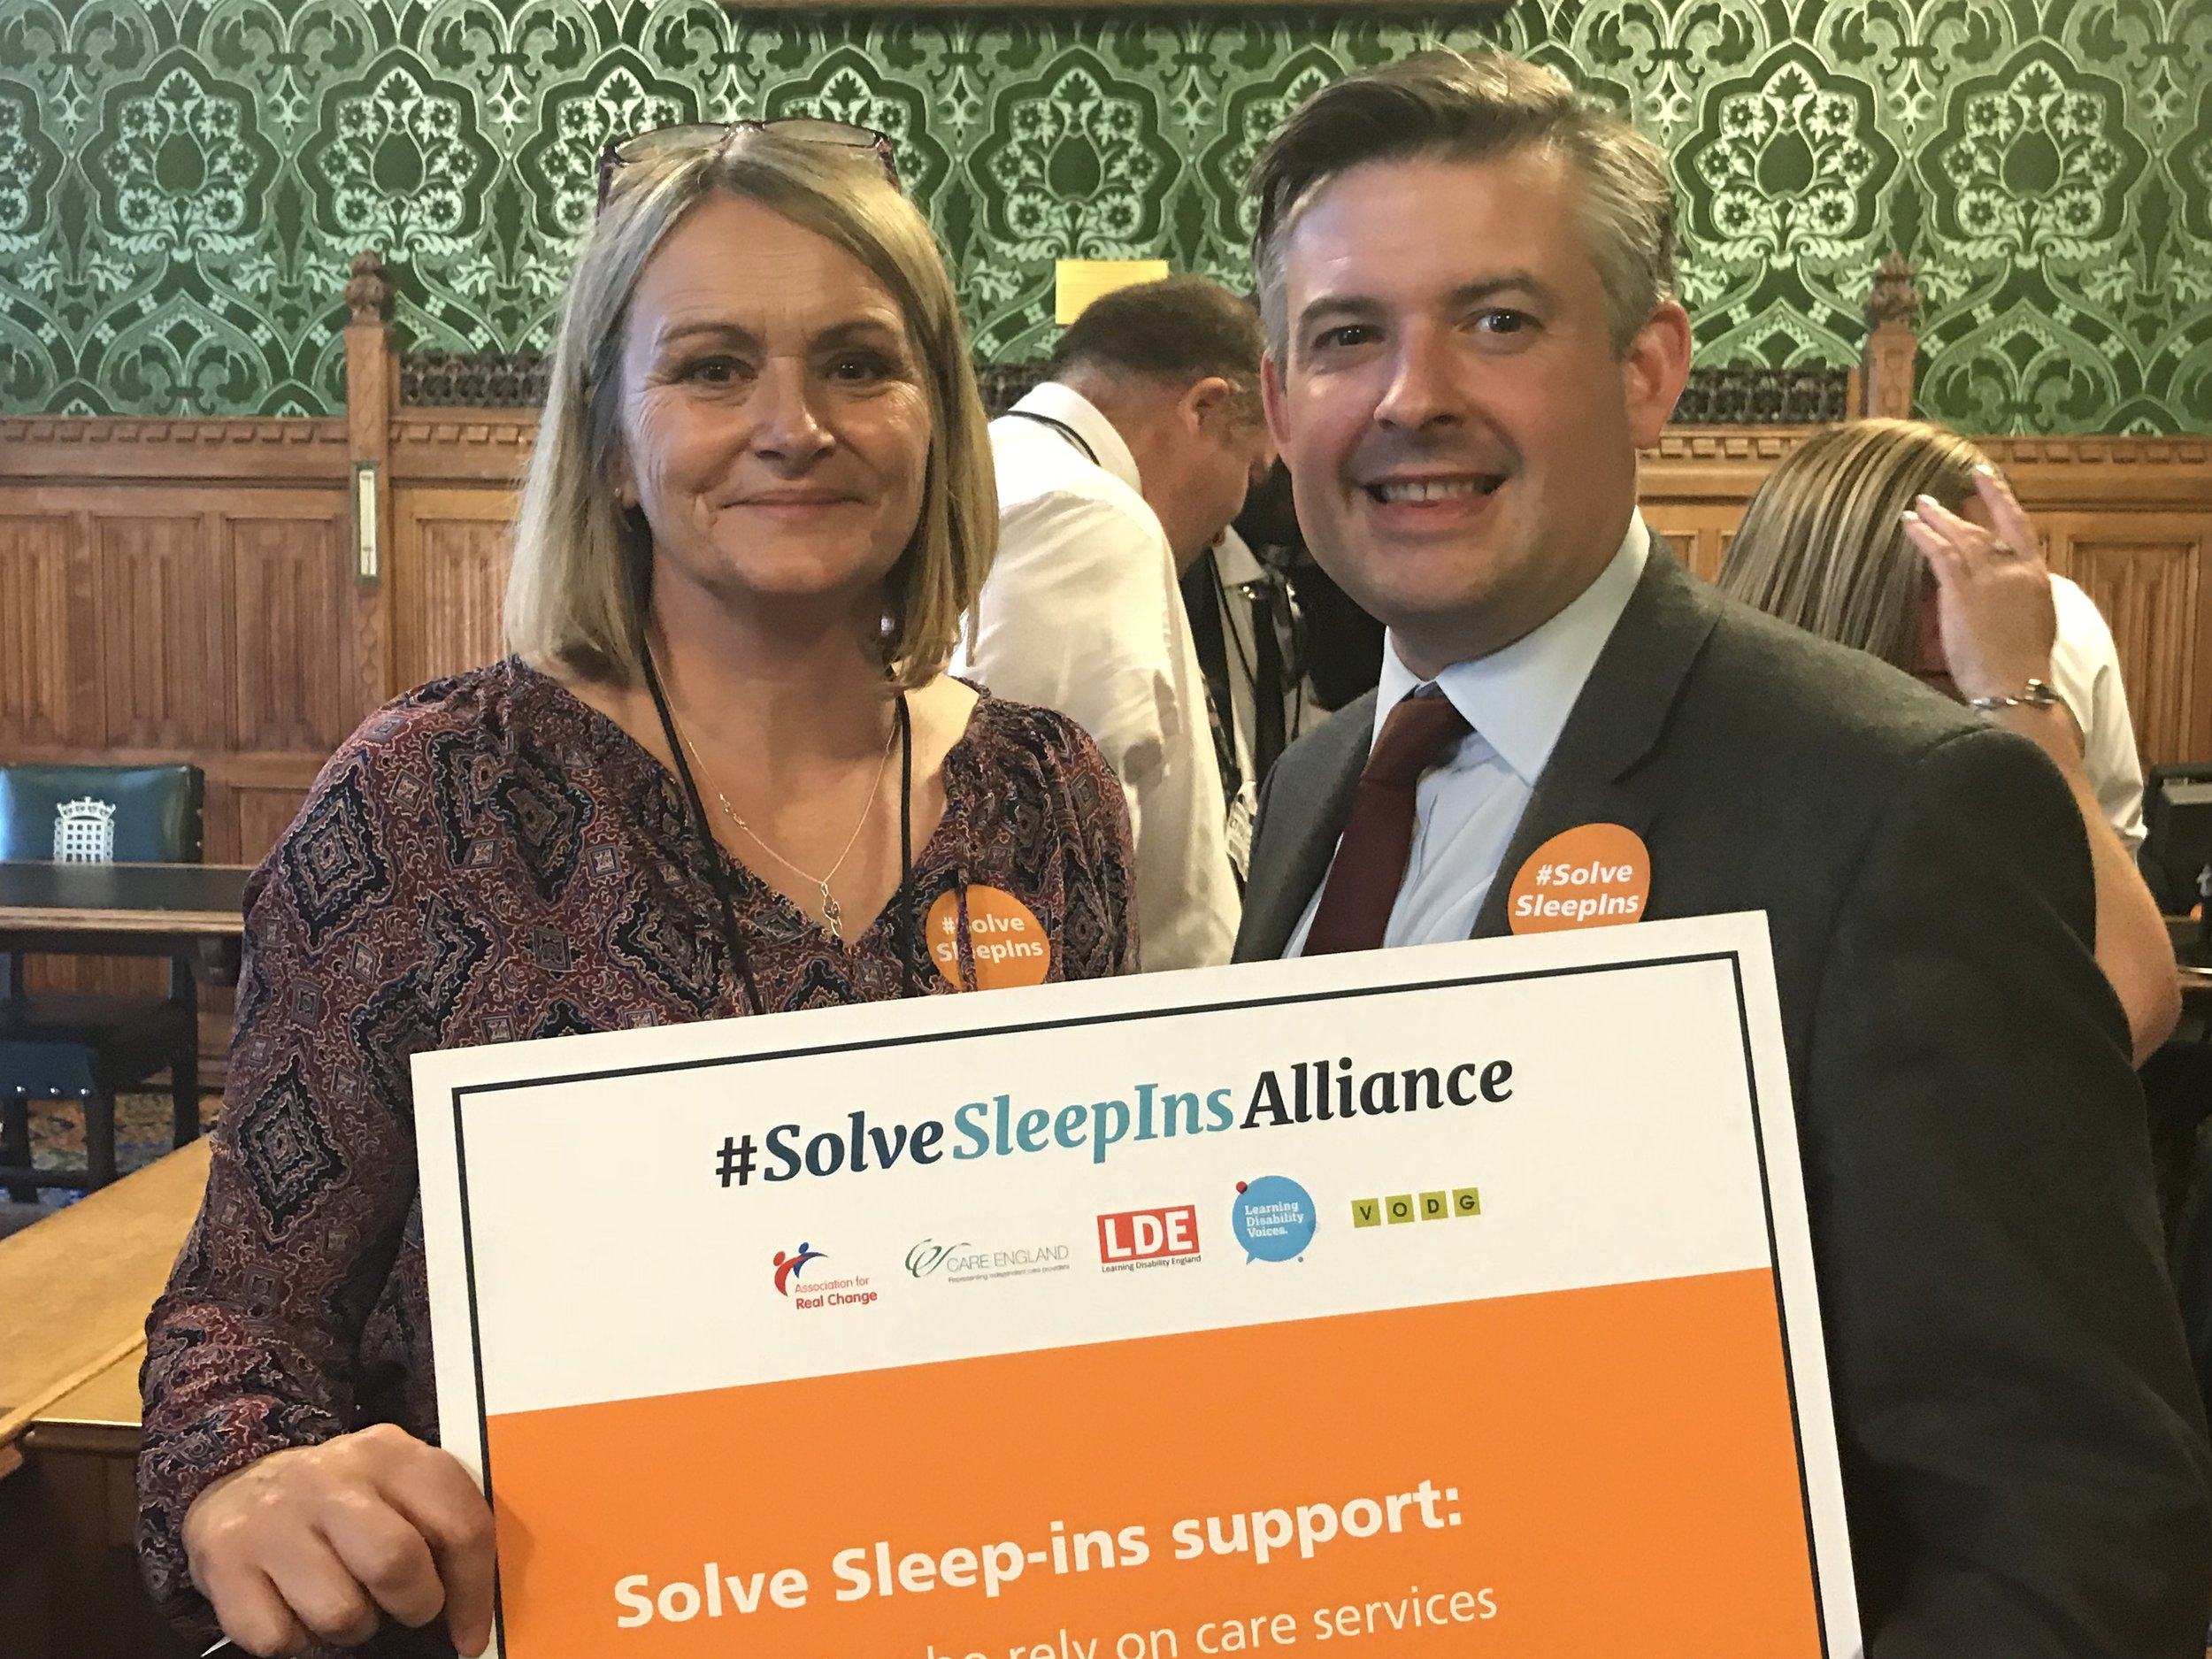 Jon Ashworth, Shadow Health Secretary, attends #SolveSleepIns Alliance Day of Action to ask the Government to solve the sleep-in crisis - Wednesday June 27 2018